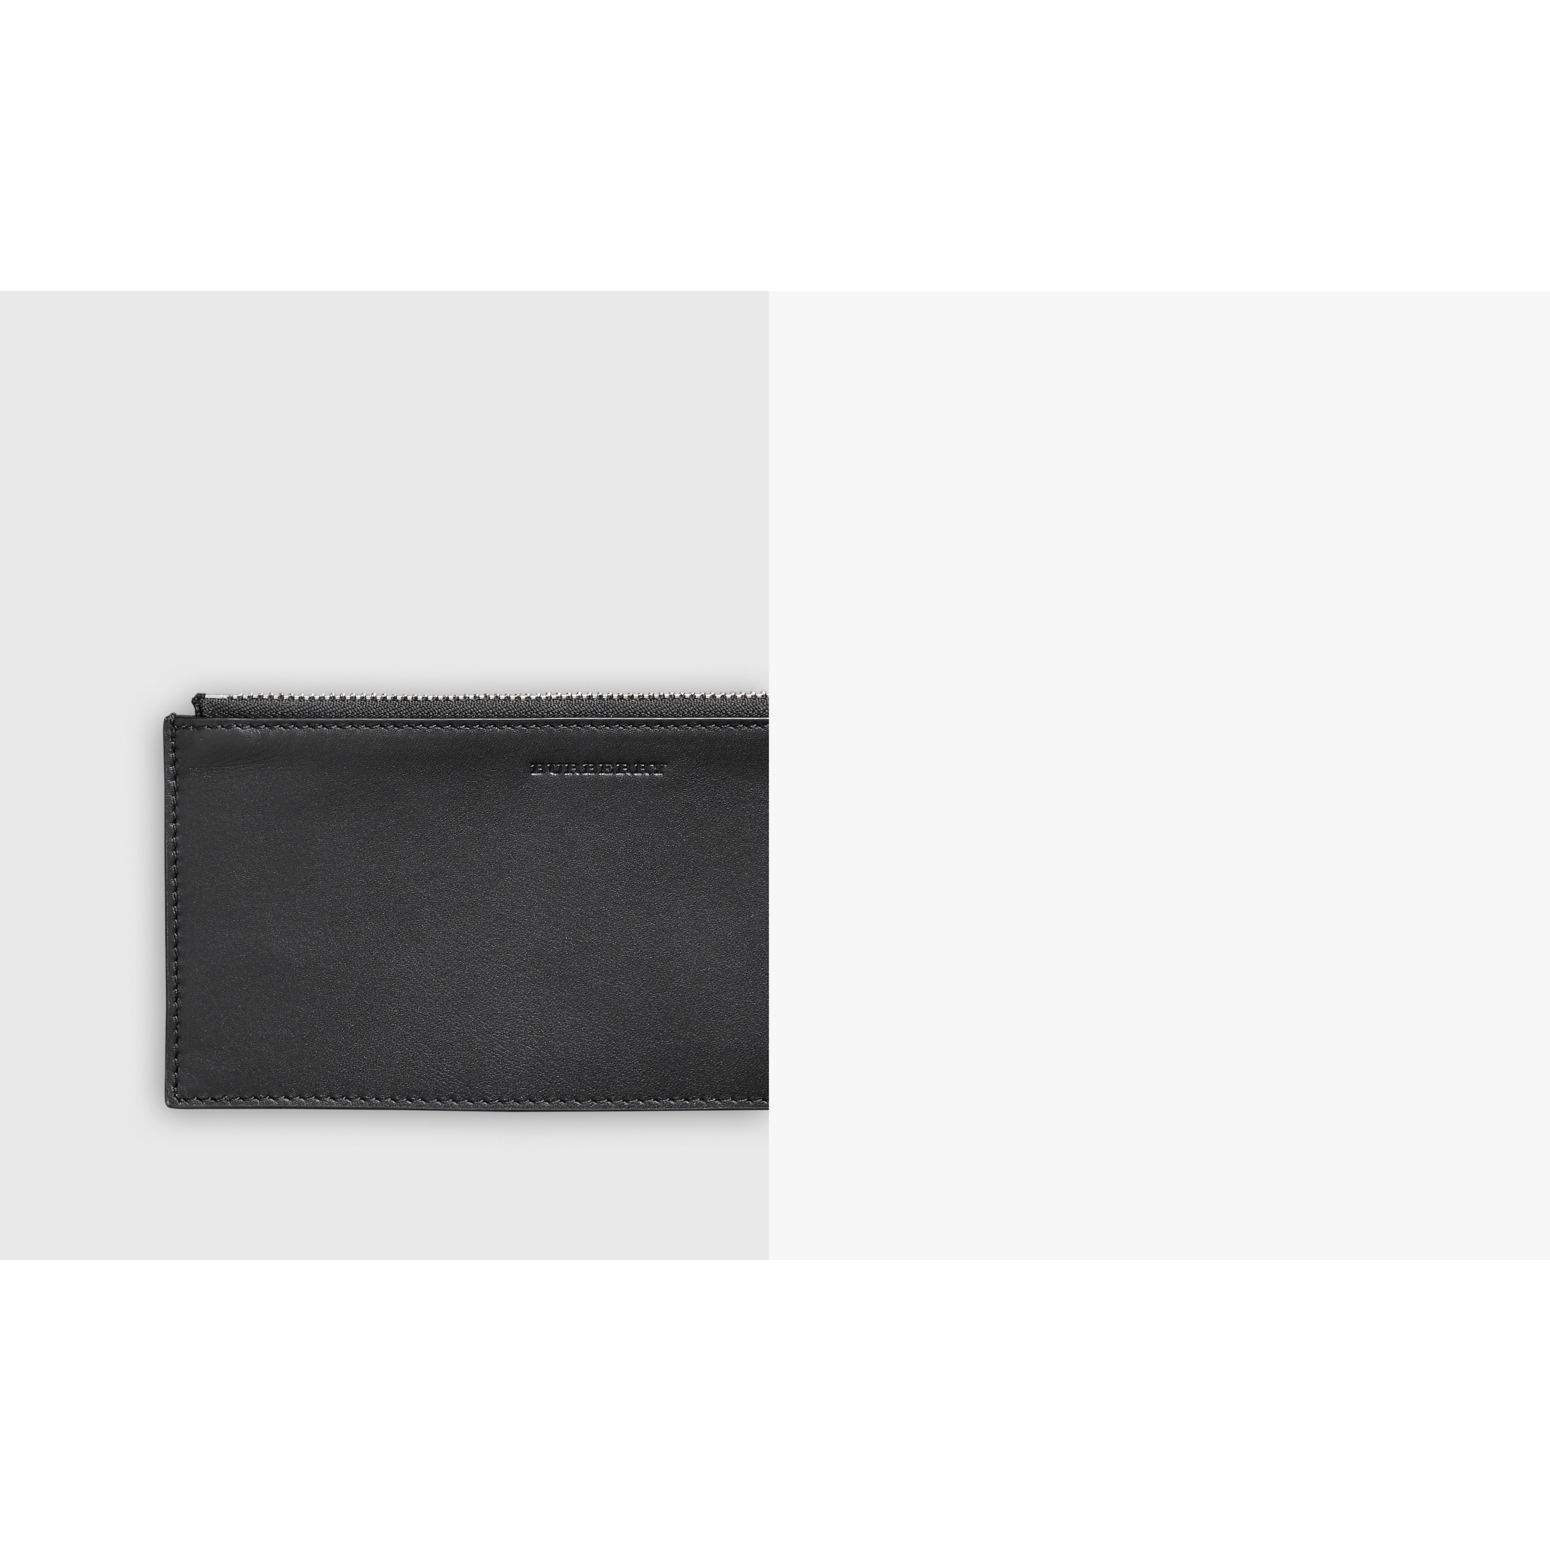 London Check and Leather Travel Wallet in Charcoal/black - Men | Burberry Singapore - gallery image 1